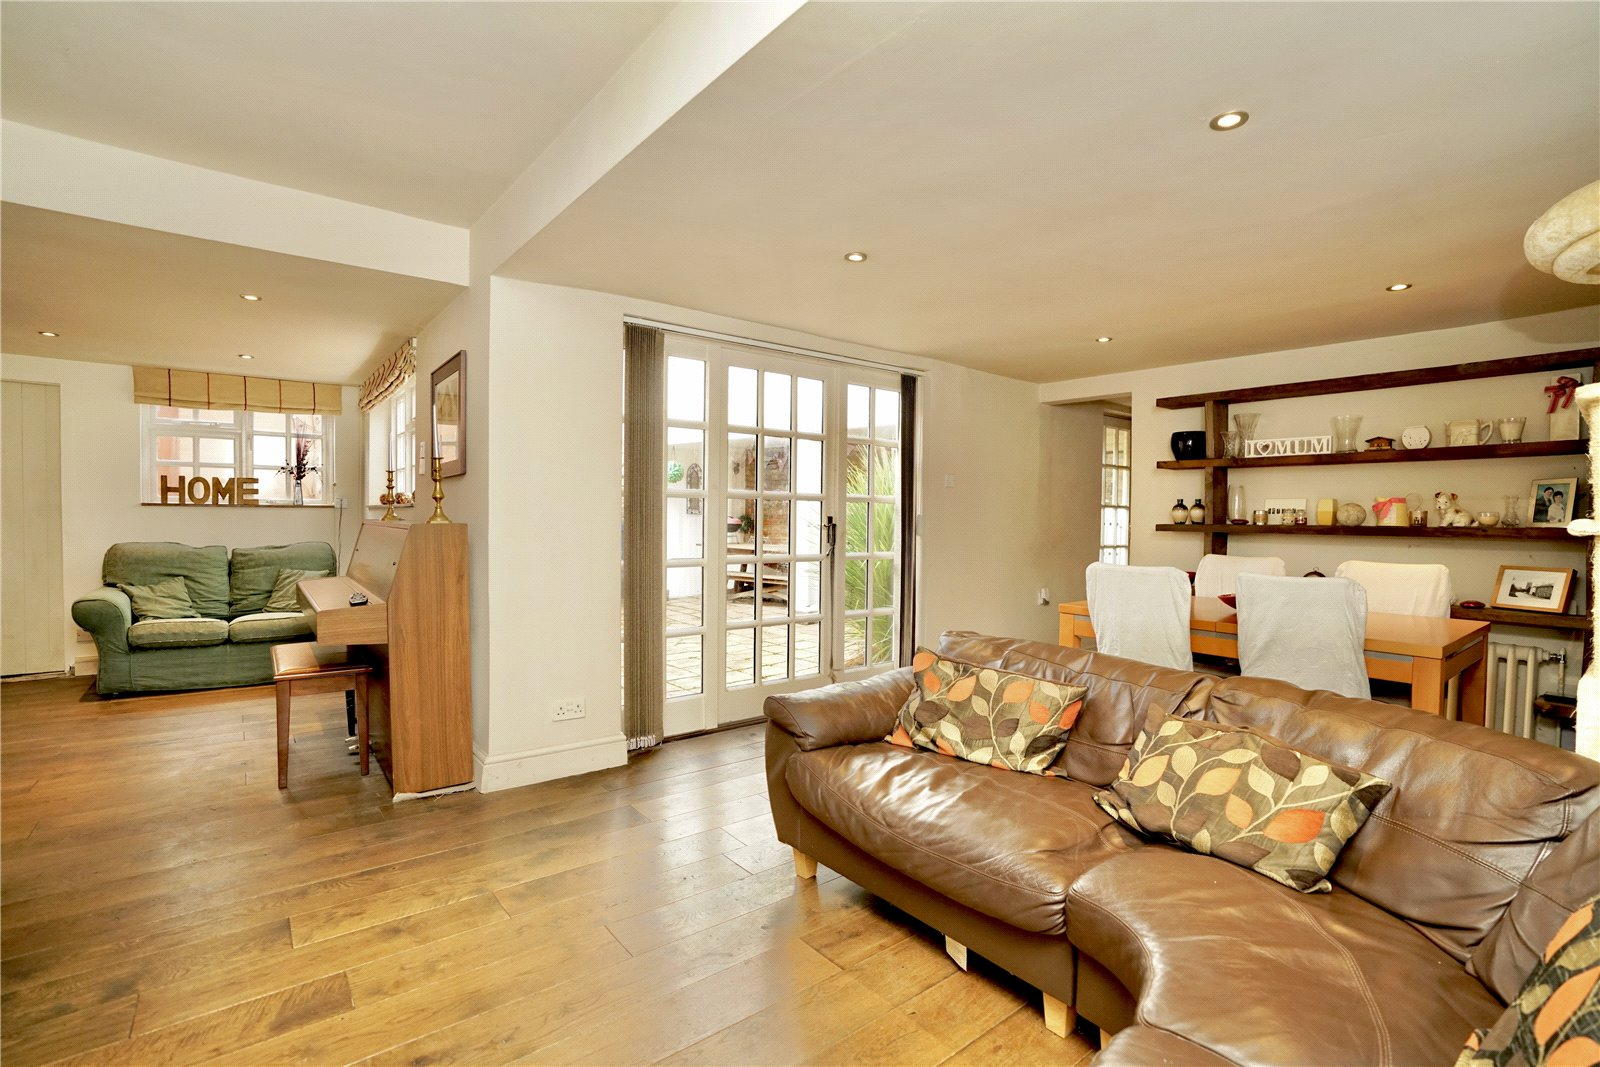 4 bed for sale in The Town, Great Staughton  - Property Image 2